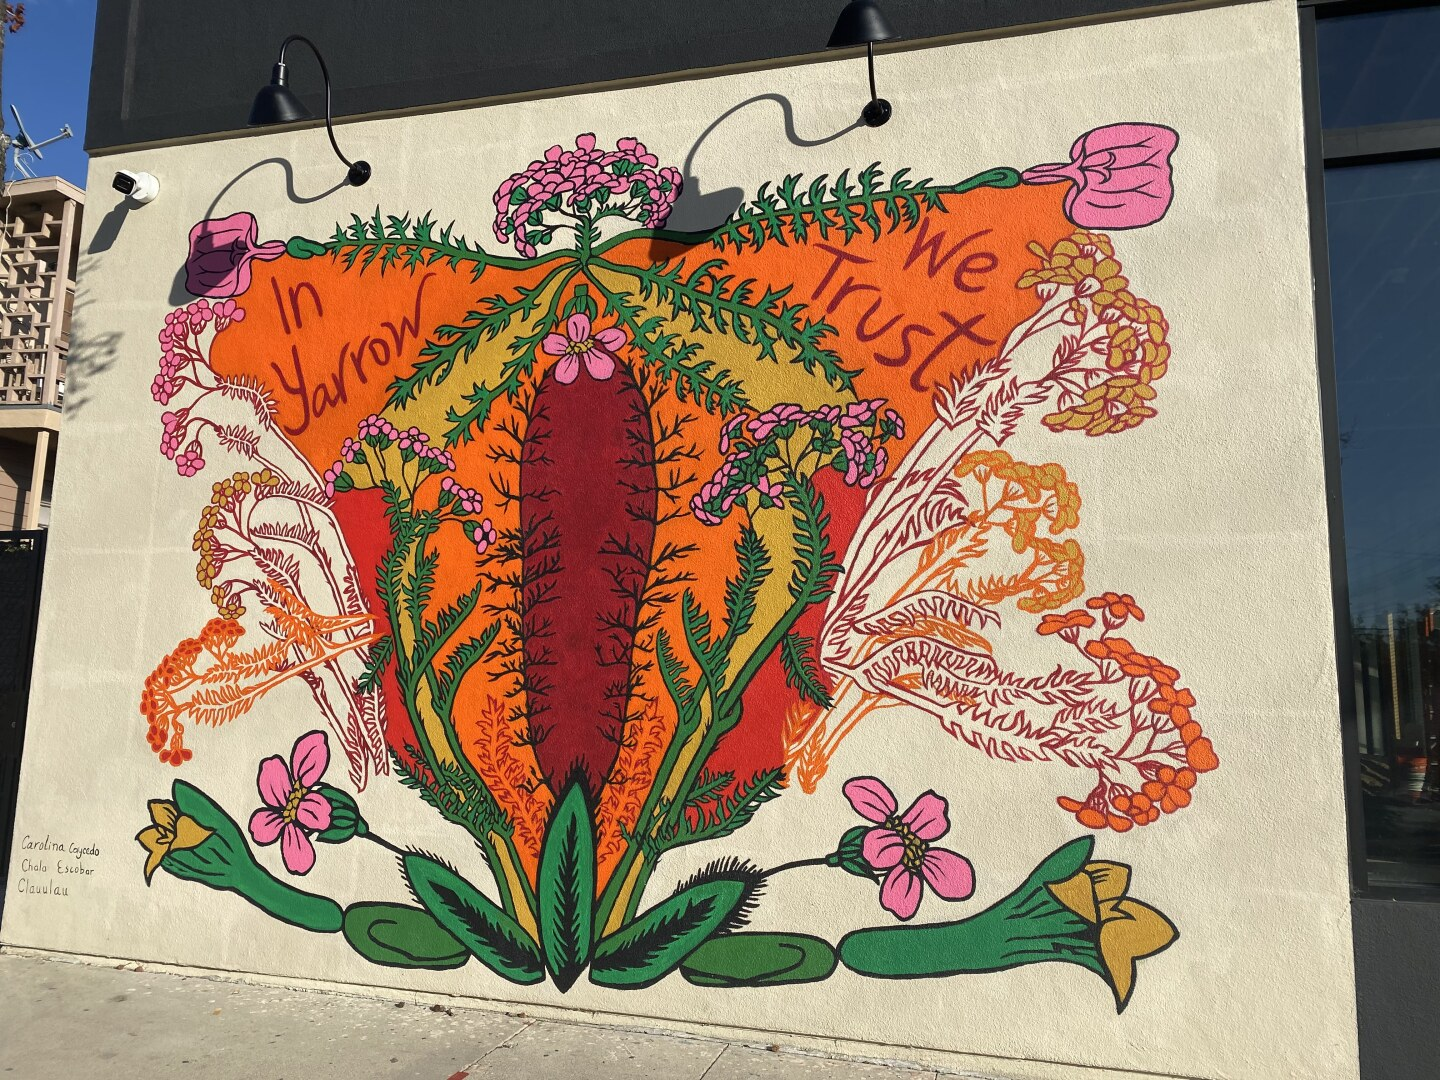 A brightly colored mural portrays a healing plant that closely resembles a uterus. The plant is said to help with menstrual pain.